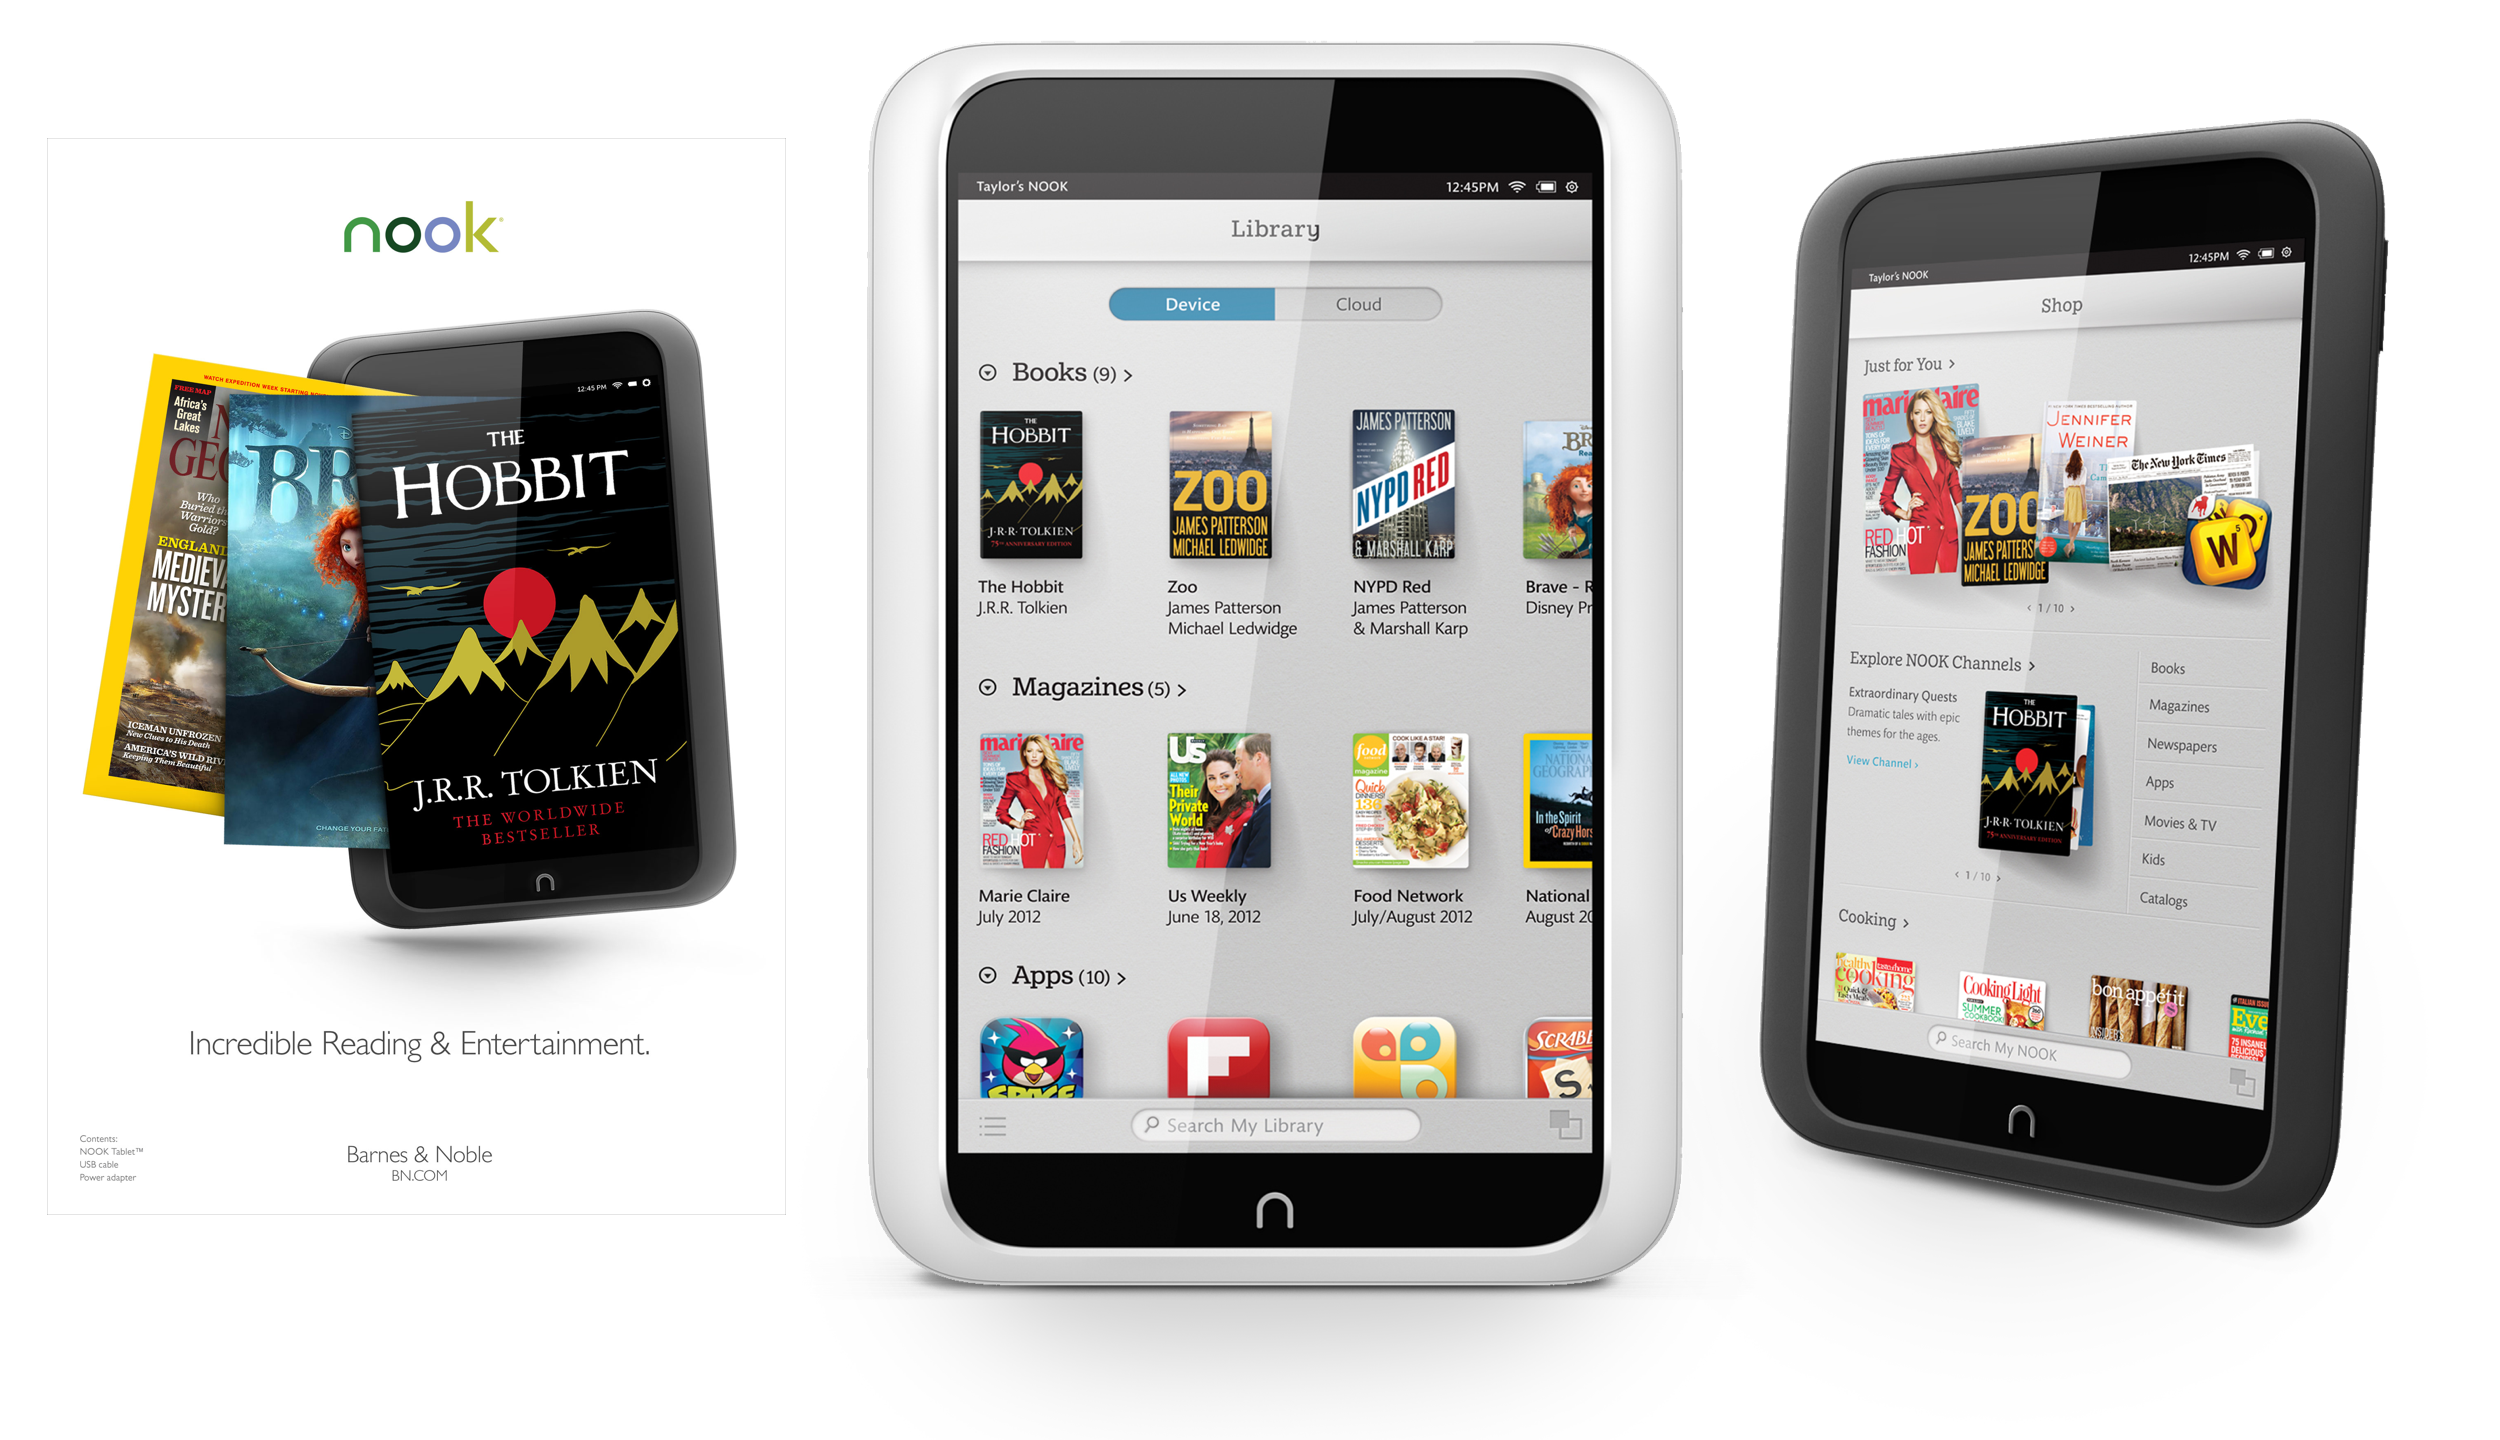 nook-hd-feature2.png